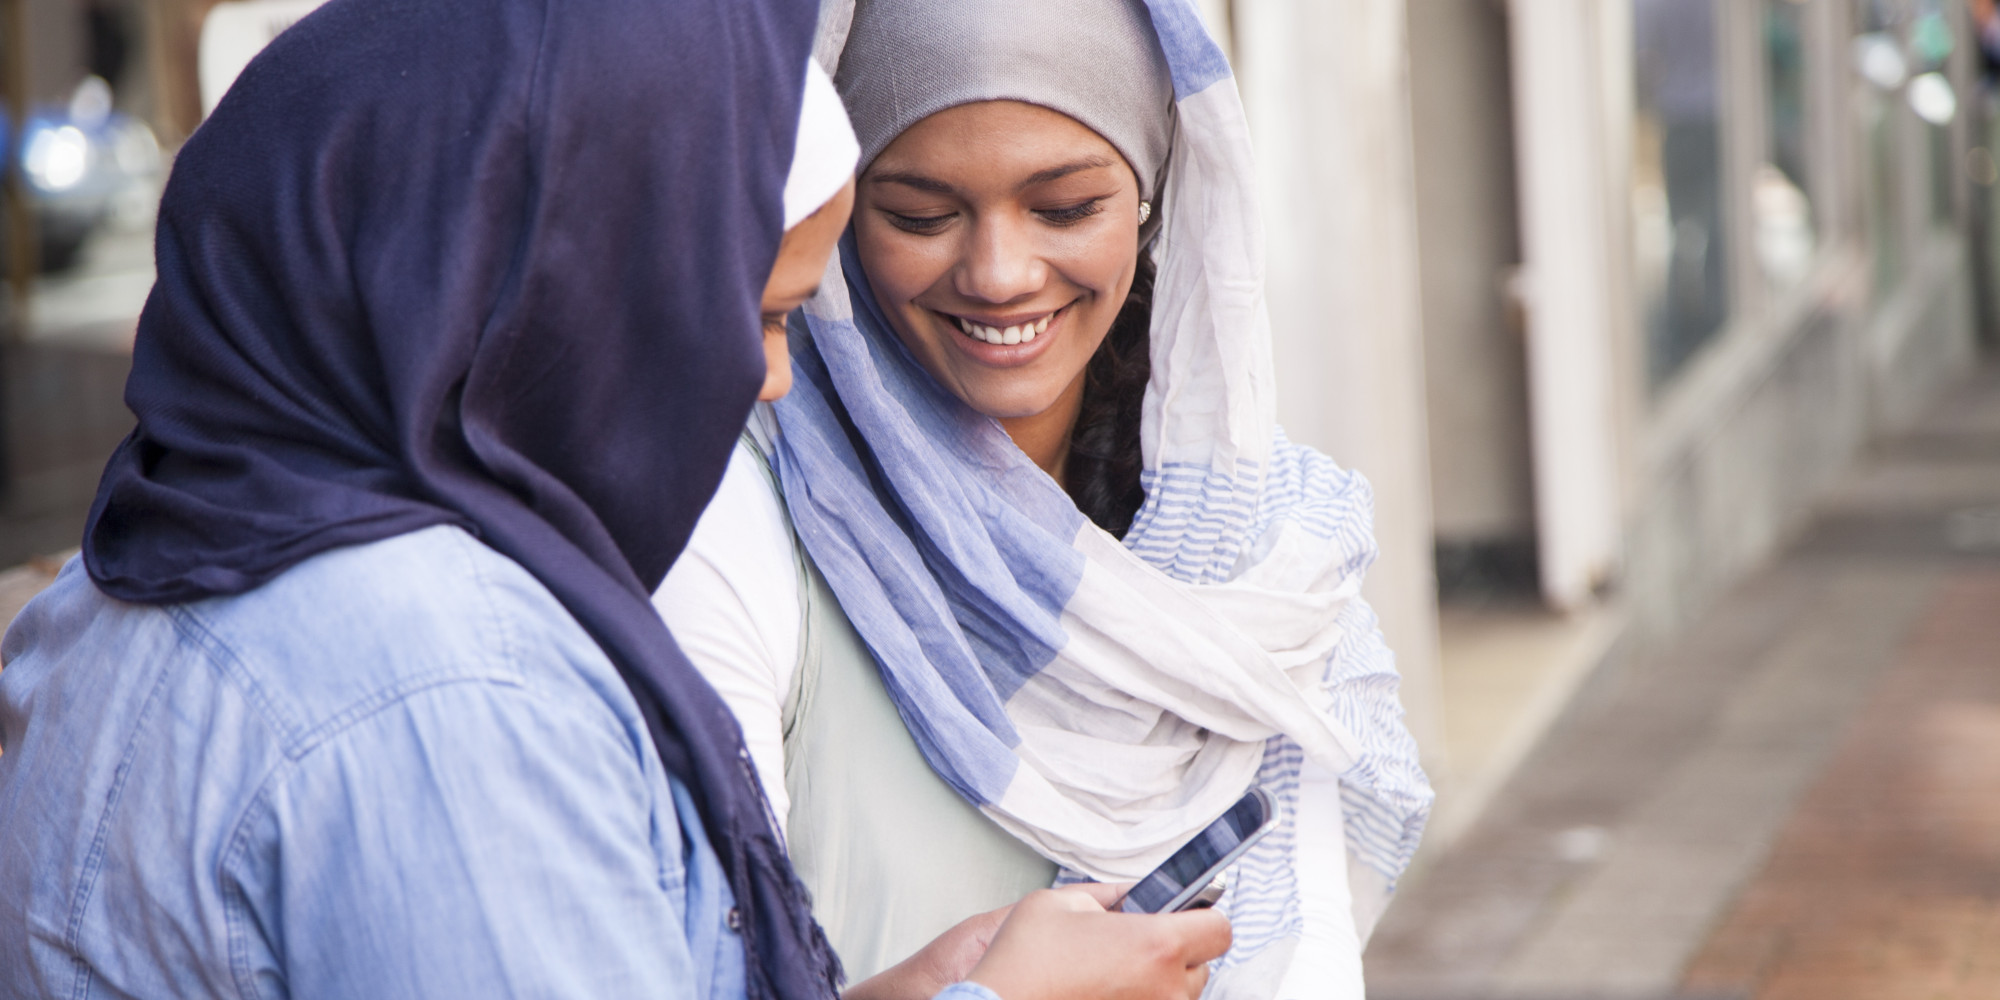 muslim single men in pipersville Muslim dating at muslimfriendscom muslimfriendscom is an online muslim dating site for muslim singles to meet each other this is the premier muslim matrimonial and personals site in the world to connect with, date and marry muslim singles.